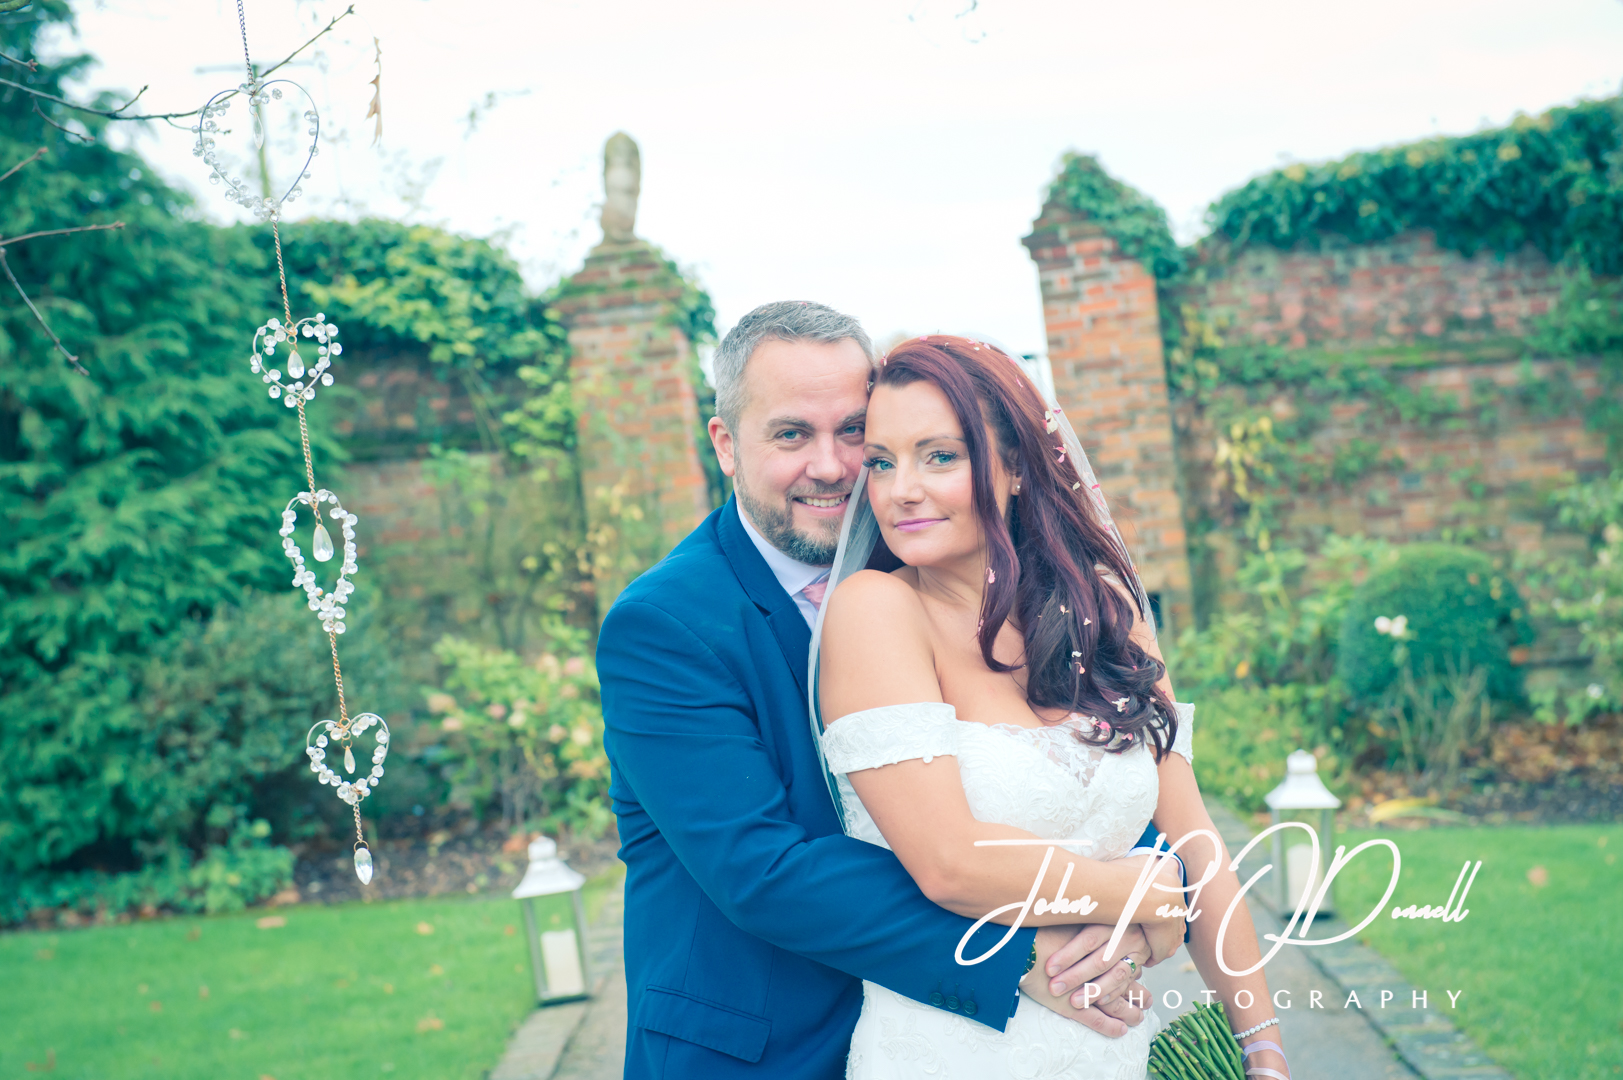 The Gaynes Park Wedding of Laura and Richard by John Paul ODonnell